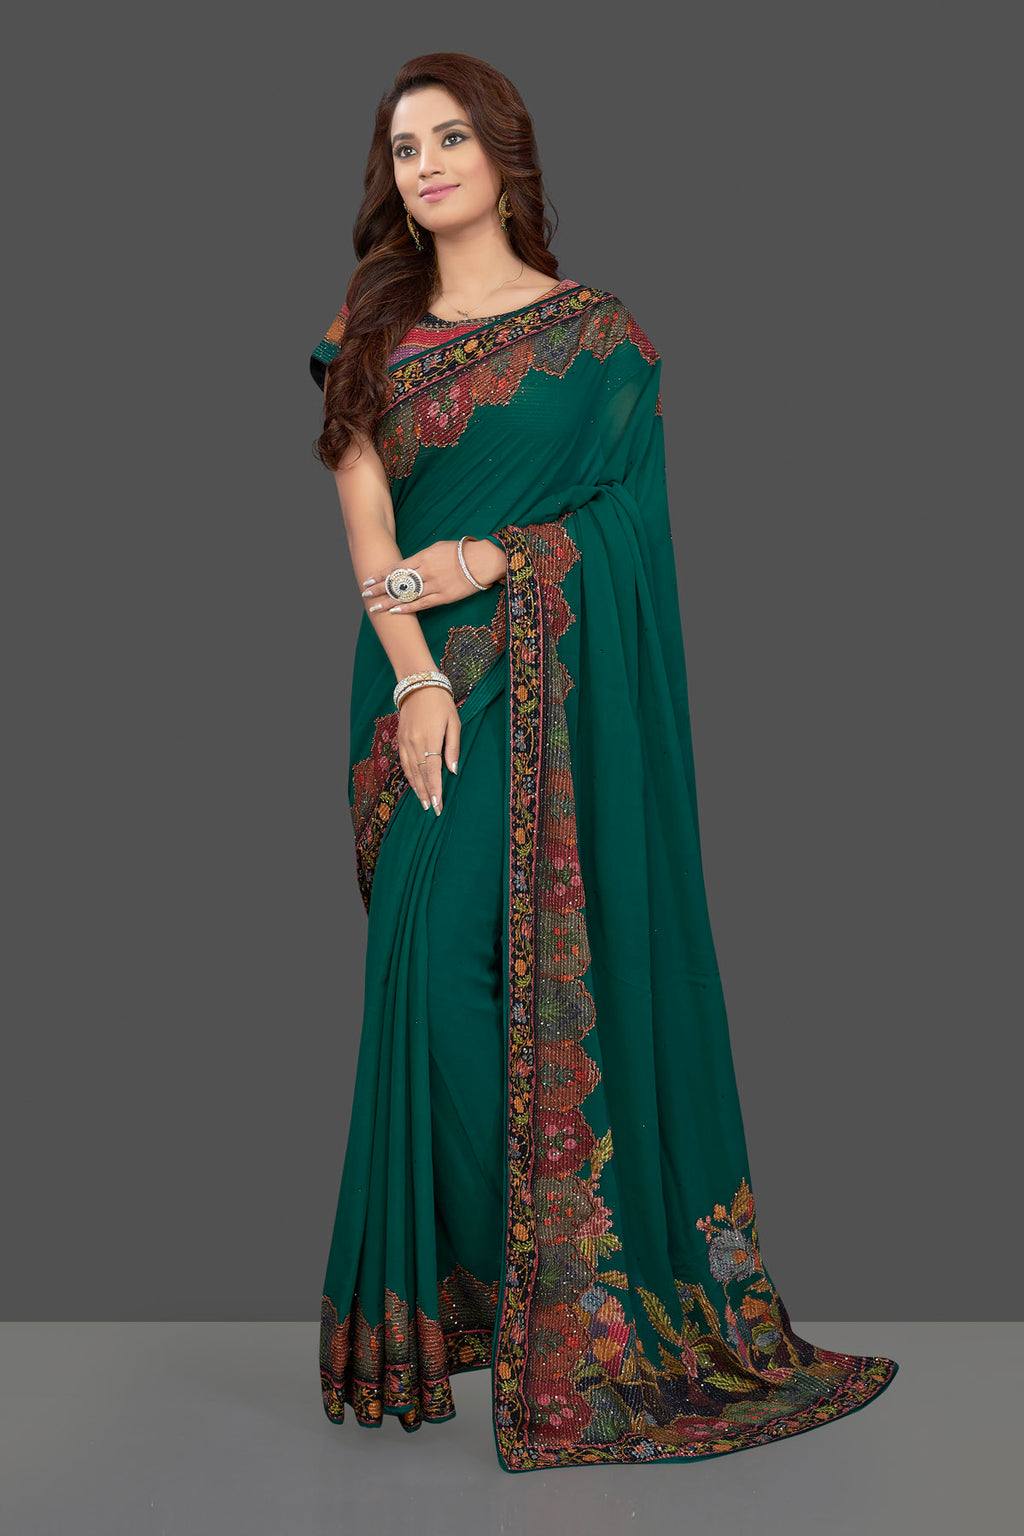 Buy beautiful dark green georgette saree online in USA with multicolor printed border. Make you presence felt with your Indian style on special occasions in beautiful designer sarees, handwoven sarees, muga sarees, georgette sarees from Pure Elegance Indian fashion store in USA.-full view